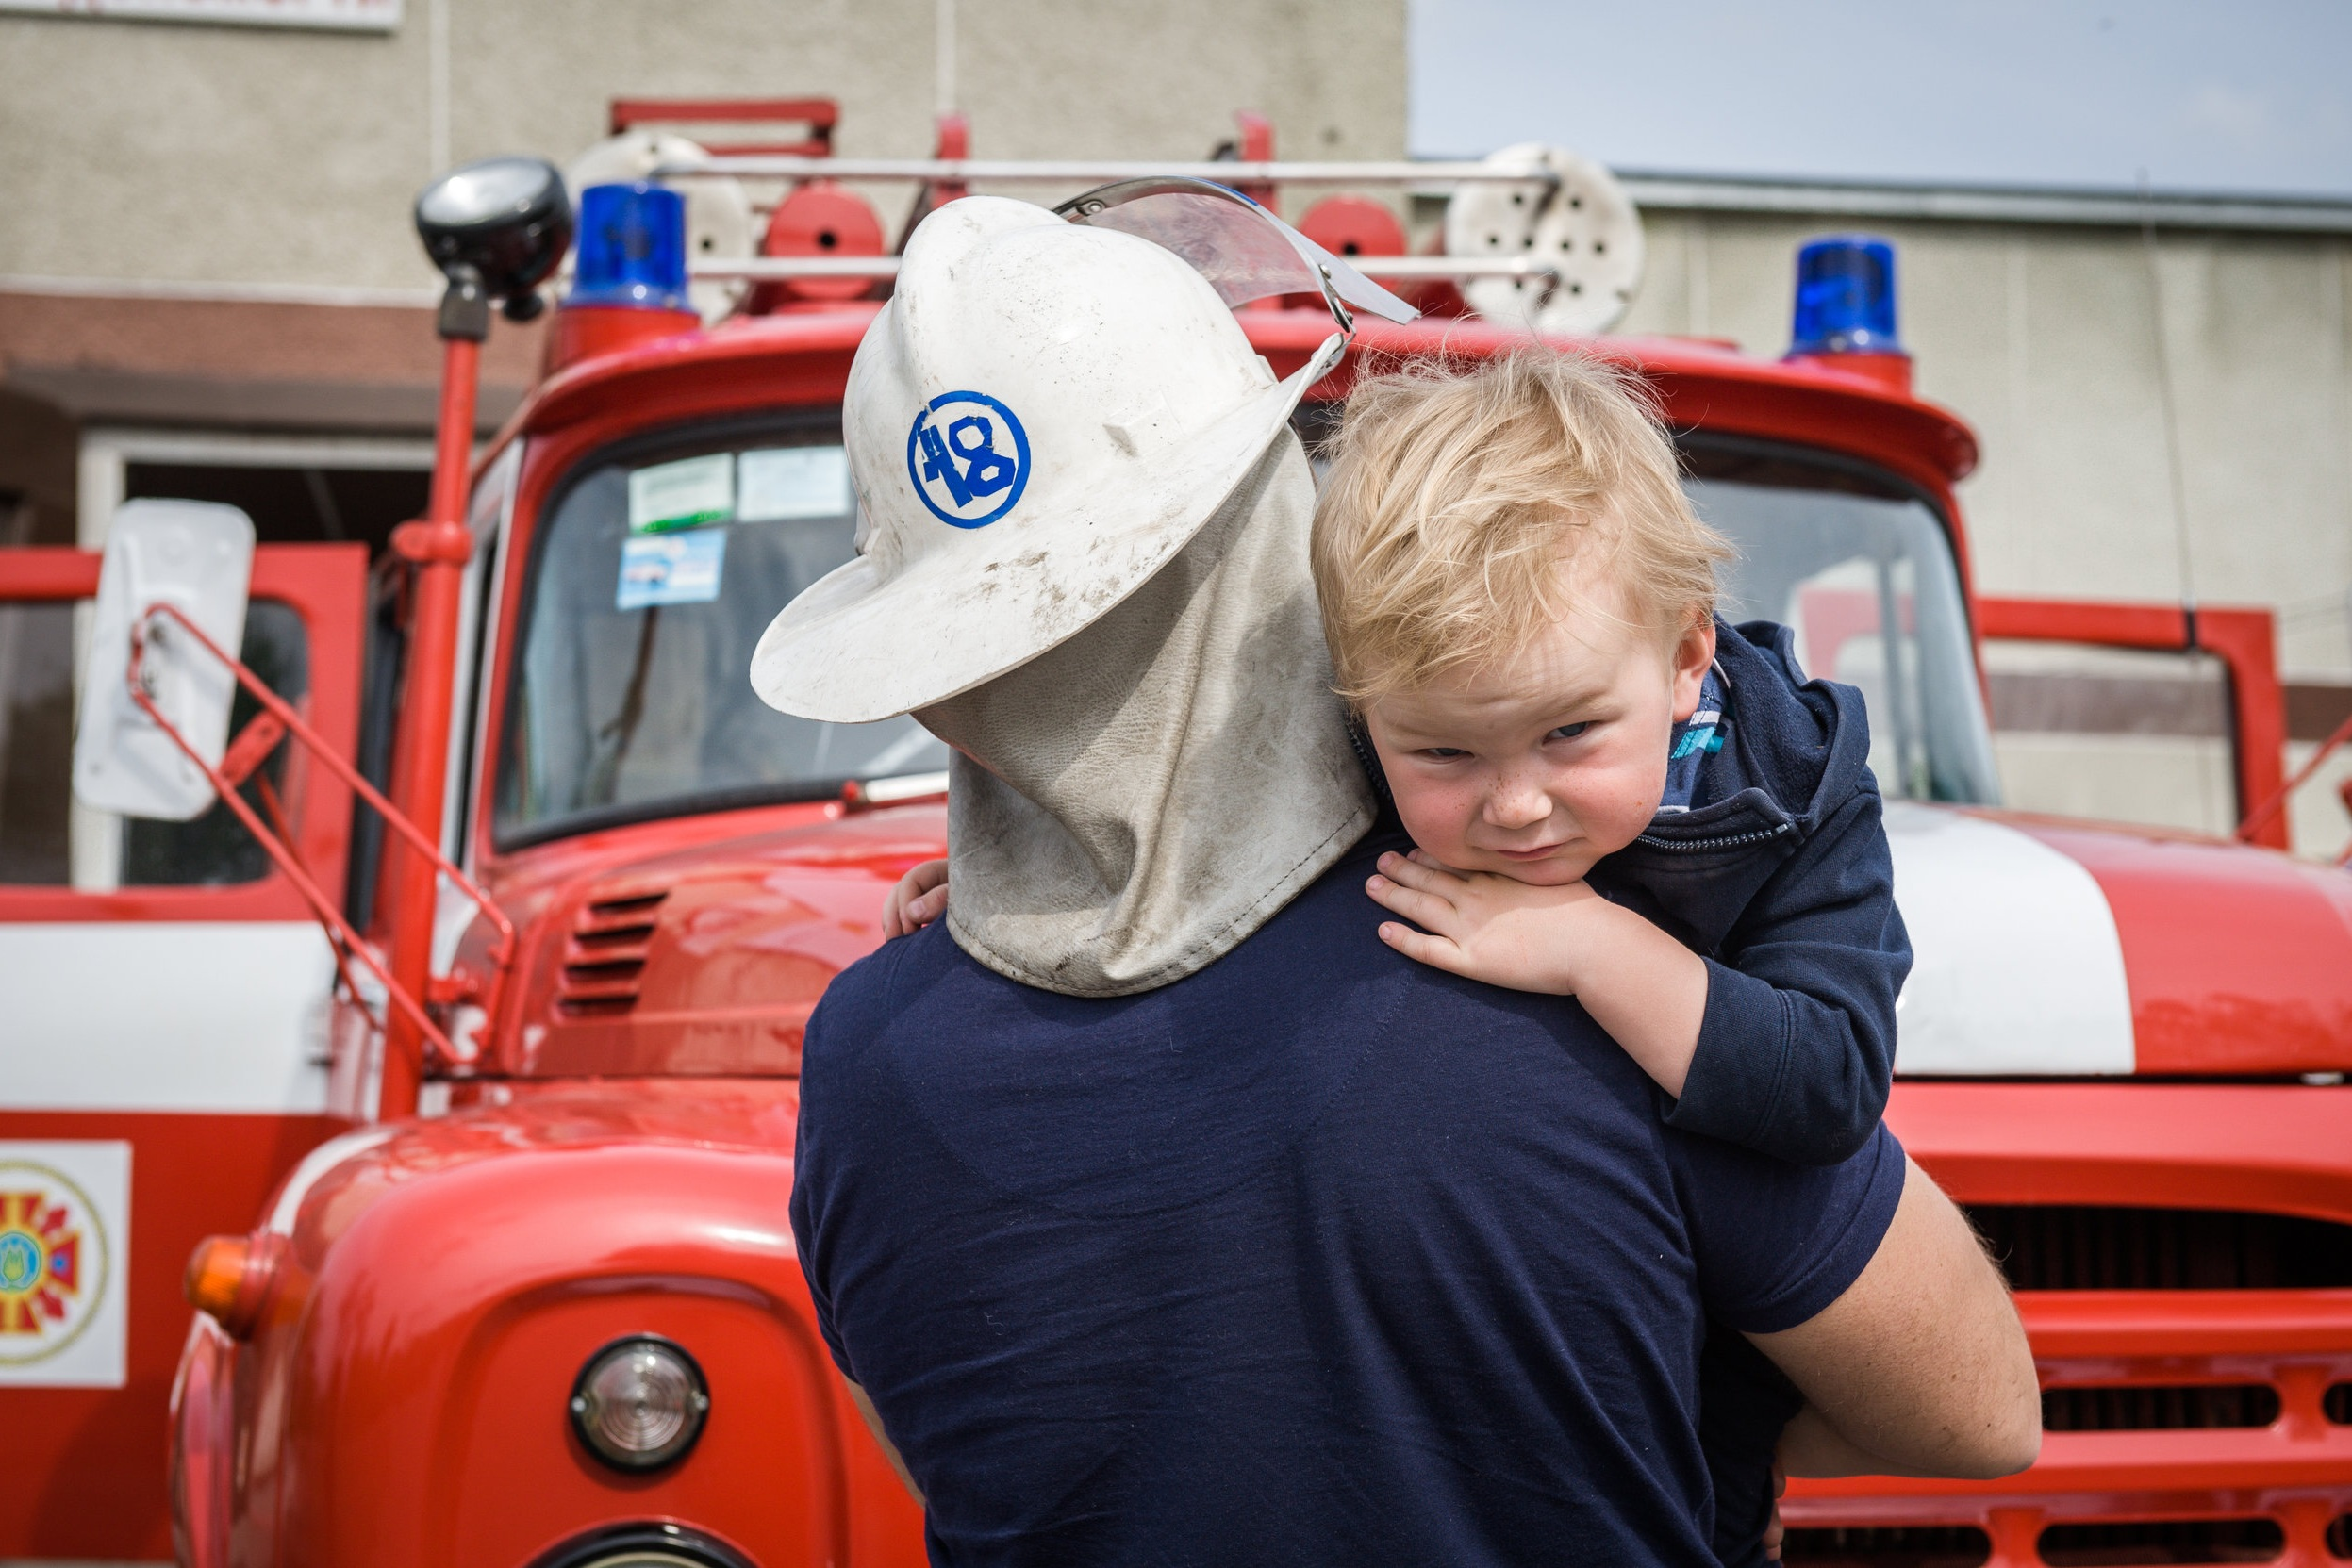 First responders: - When a family is in crisis, first responders is the most important one in showing compassion and connecting those in need to local resources.Your response is key: If families have a good experience with first responders, they are much more likely to reach out for help in the future.